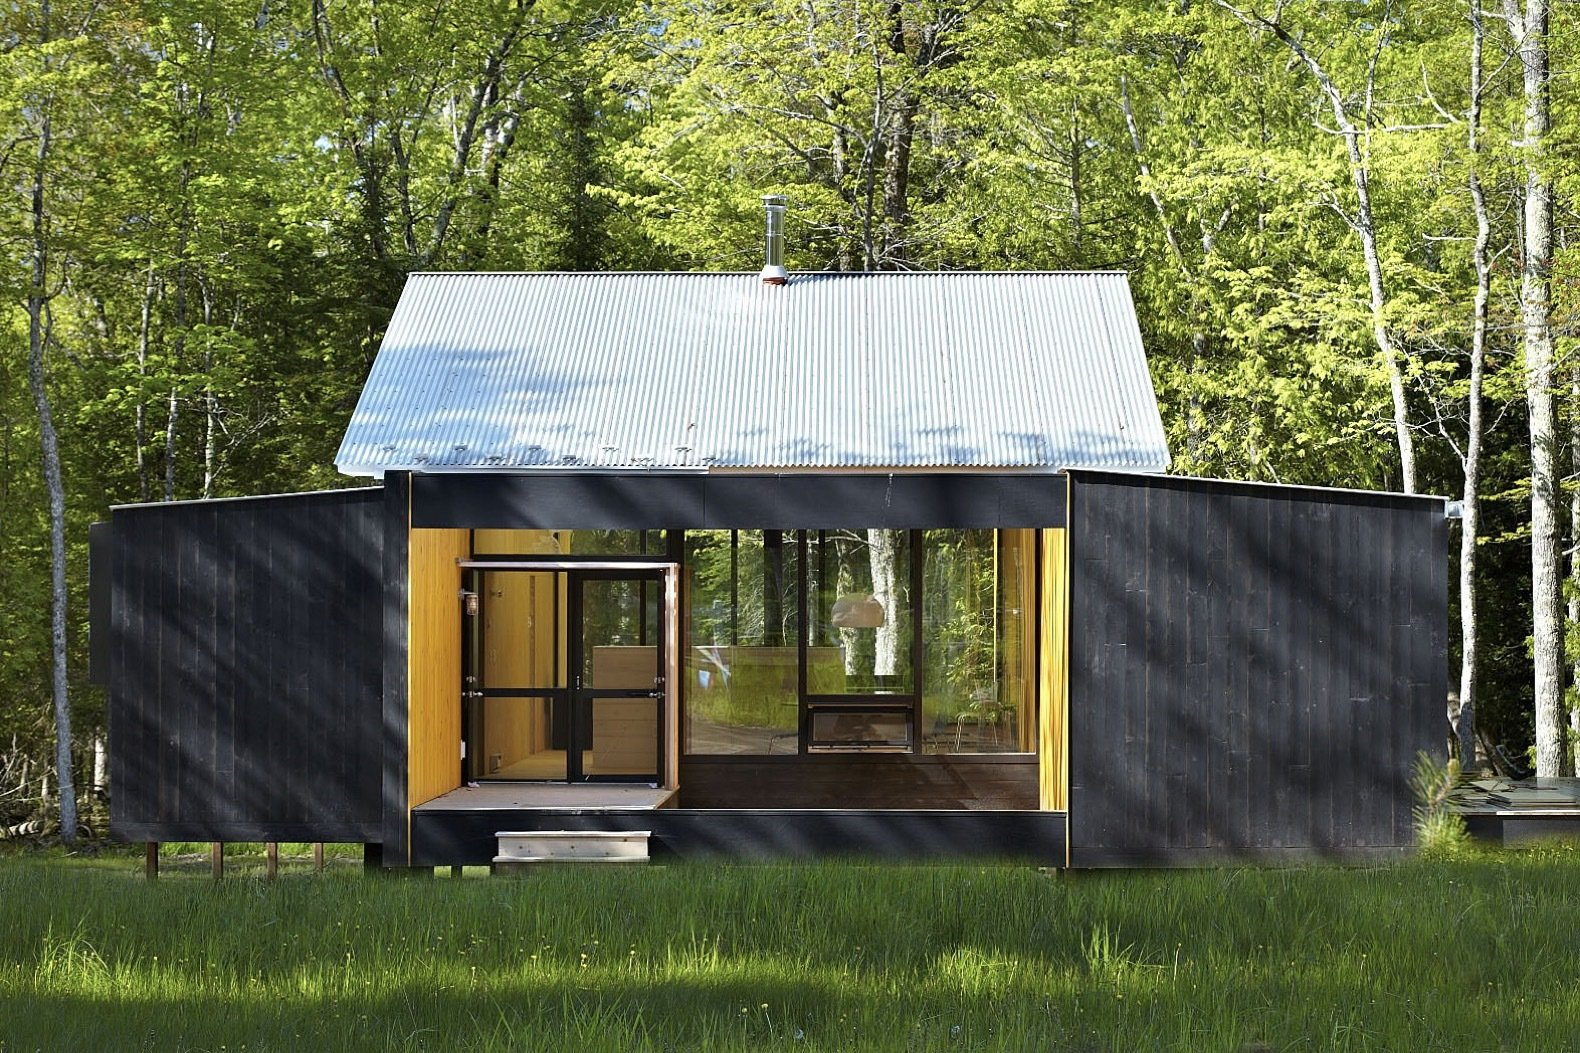 The Week'nder was constructed from two prefabricated modules.